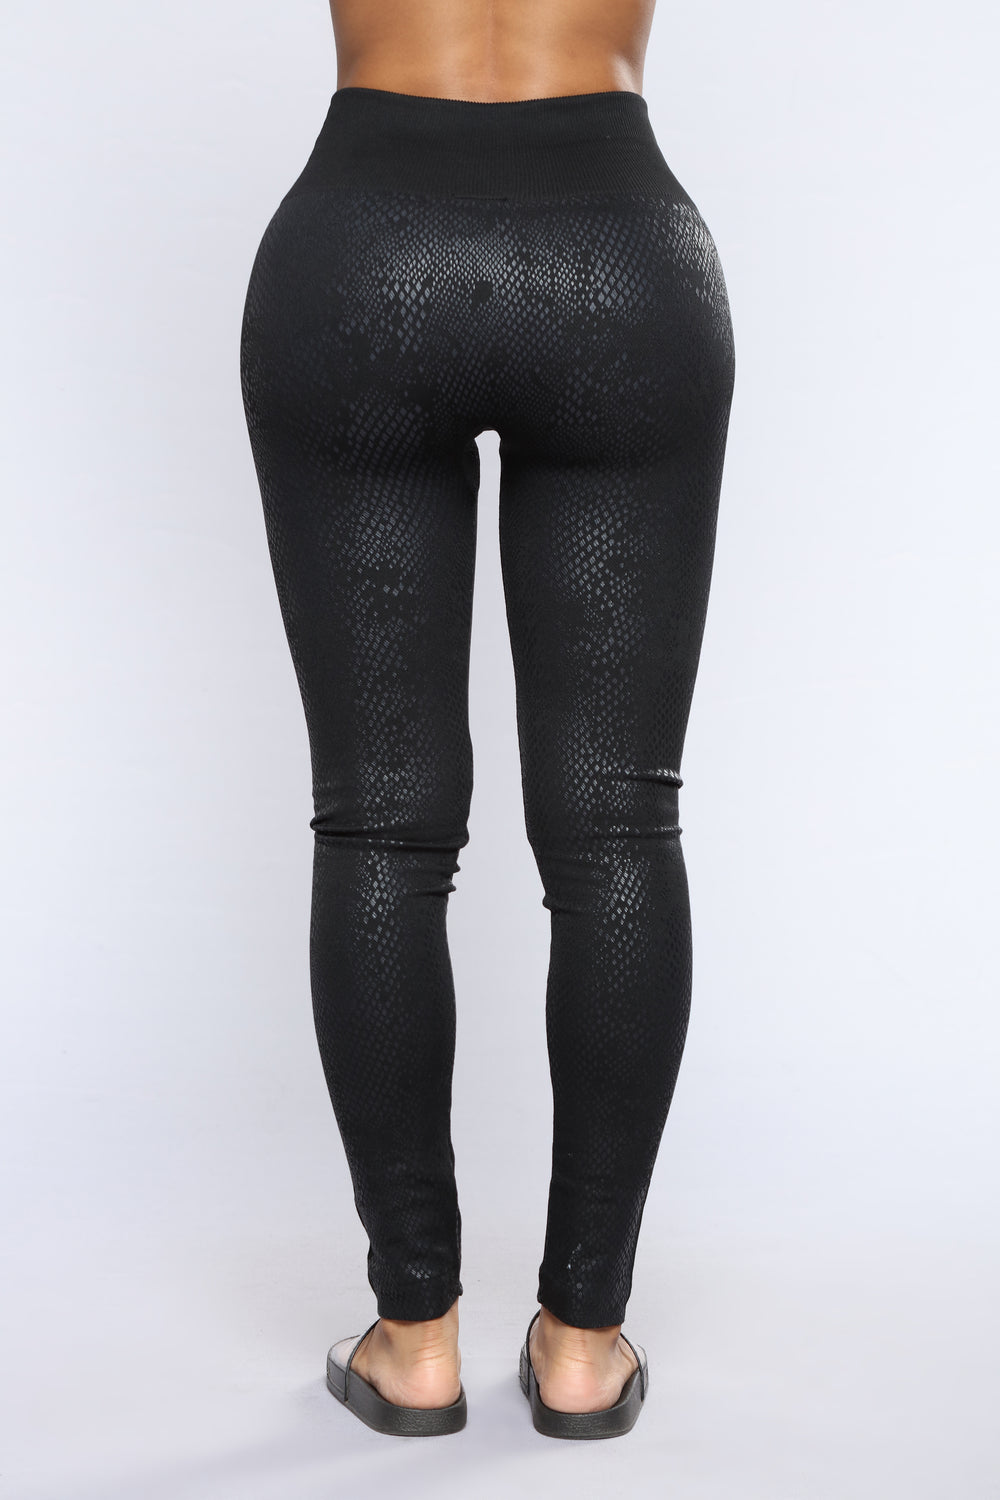 Snakey Fleece Lined Leggings - Black